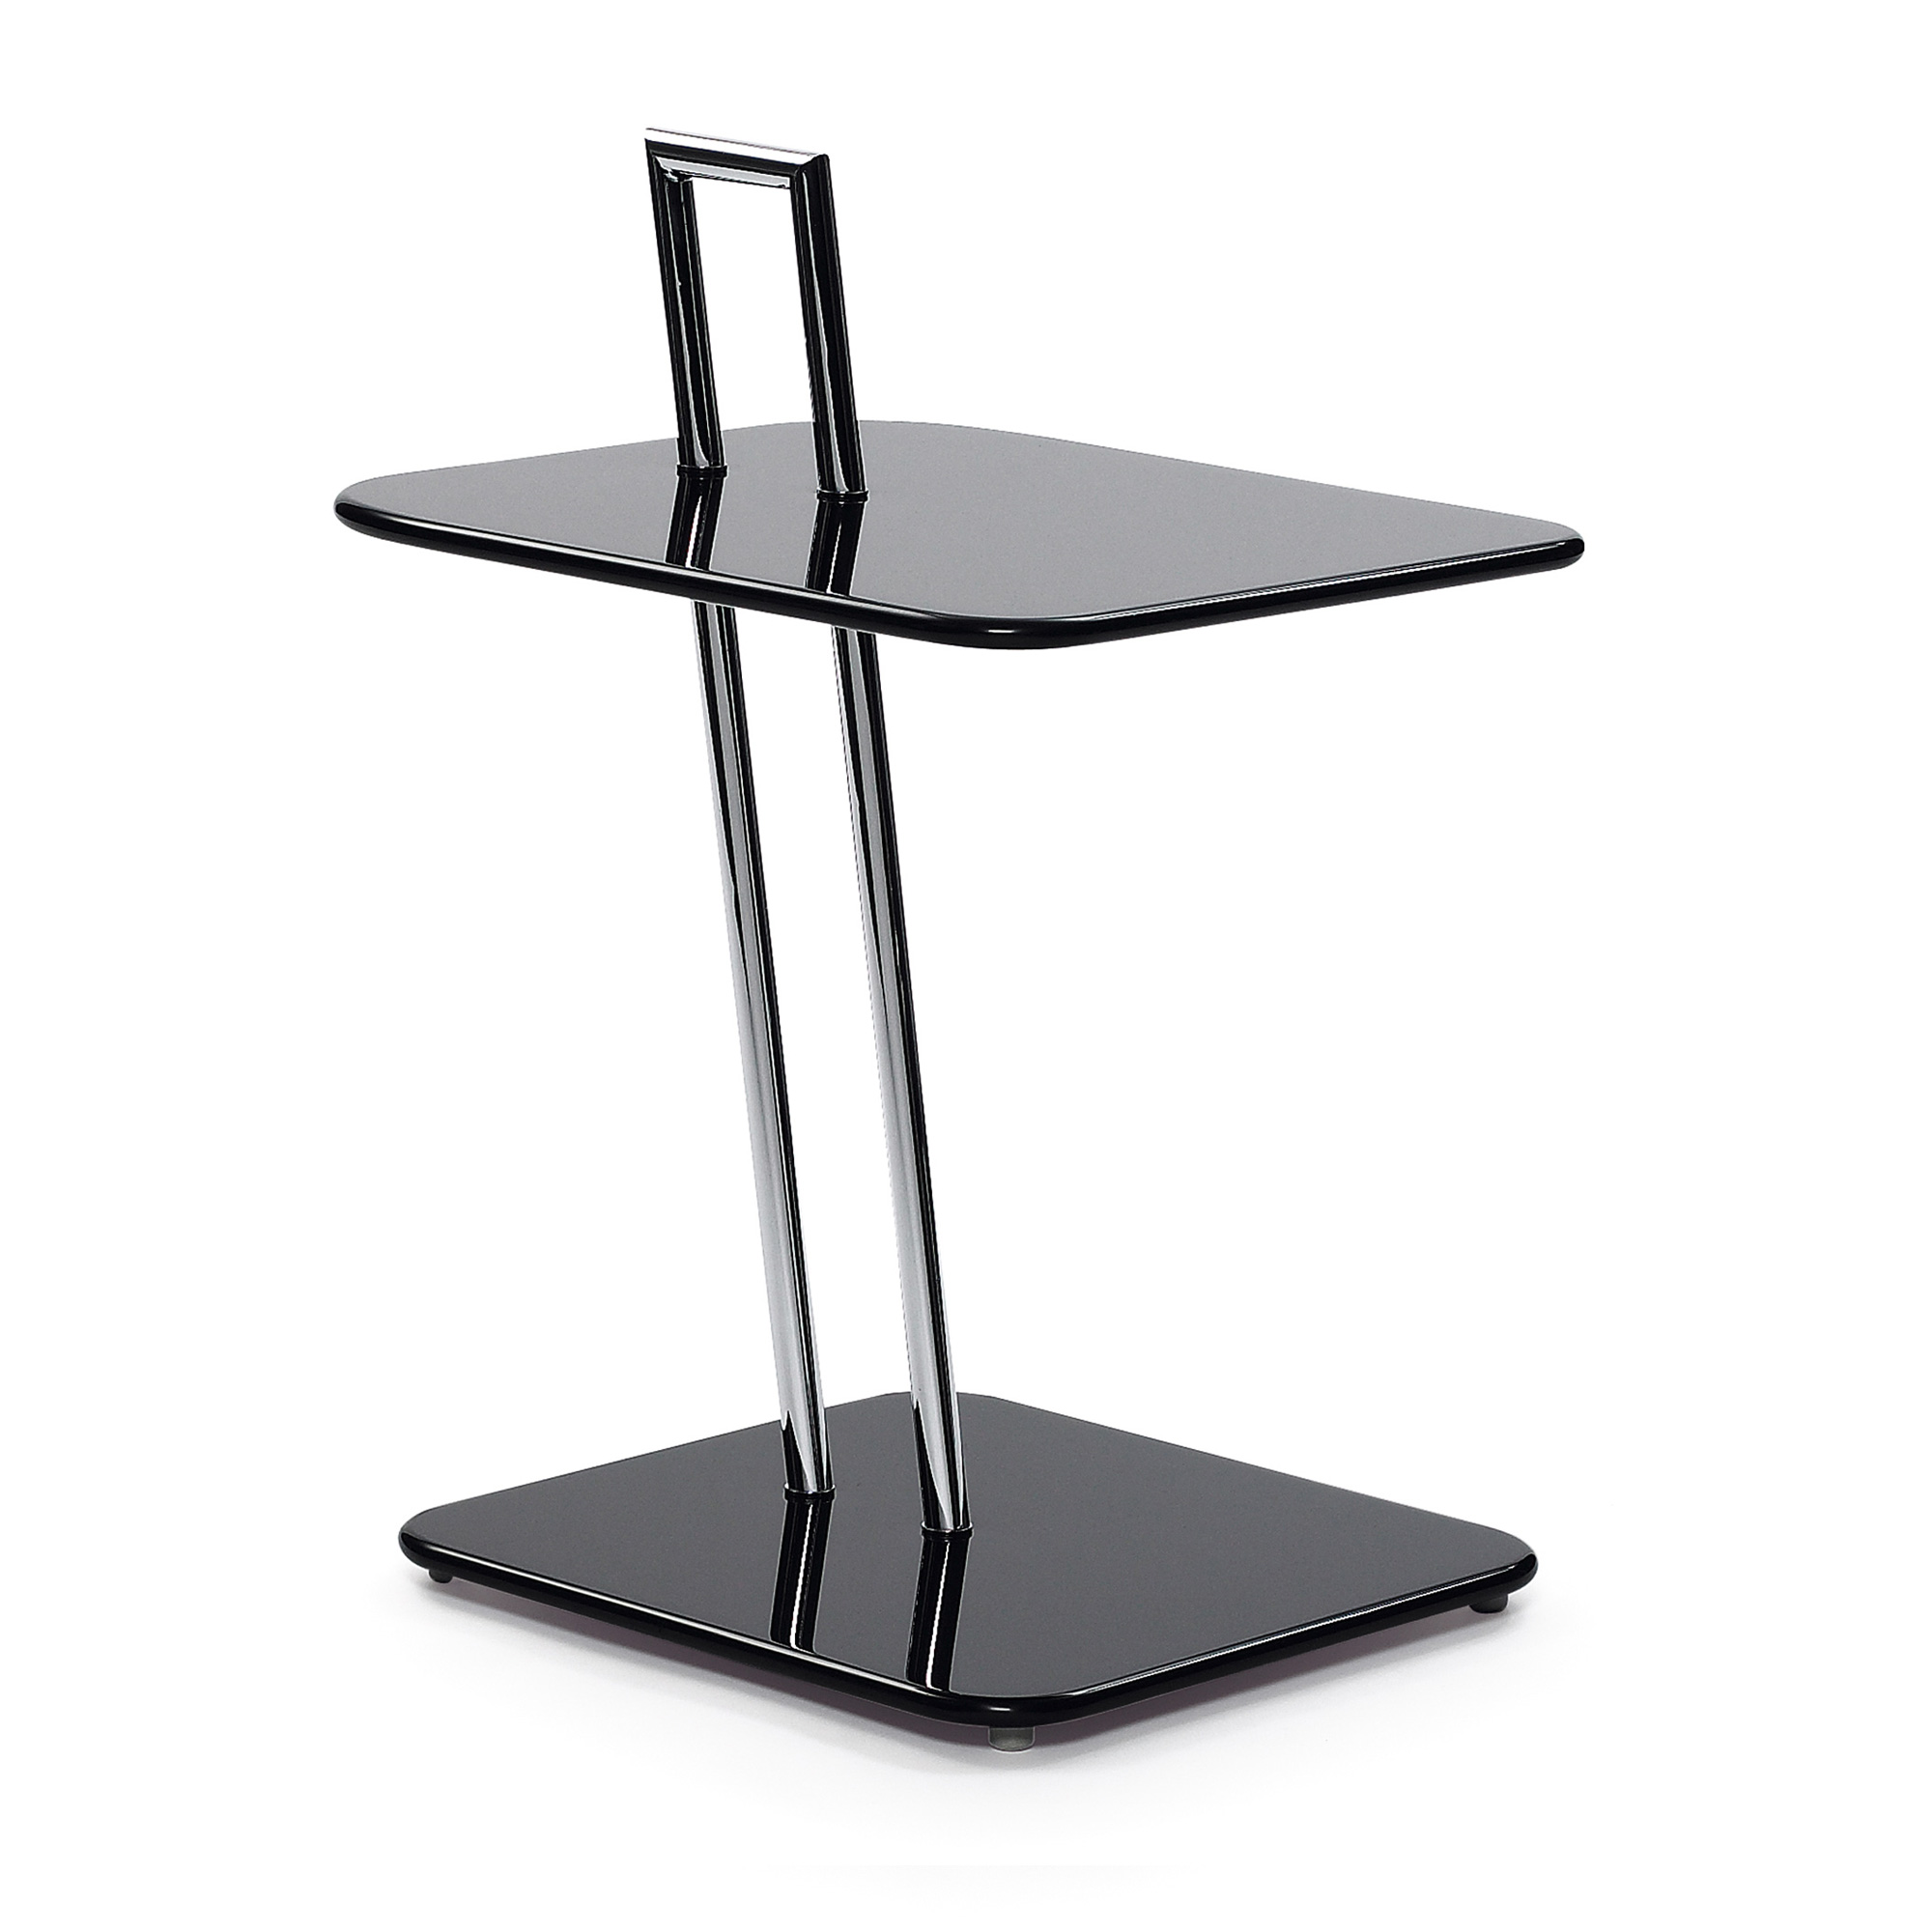 classicon occasional table beistelltisch quadratisch 101occ01 01 reuter onlineshop. Black Bedroom Furniture Sets. Home Design Ideas